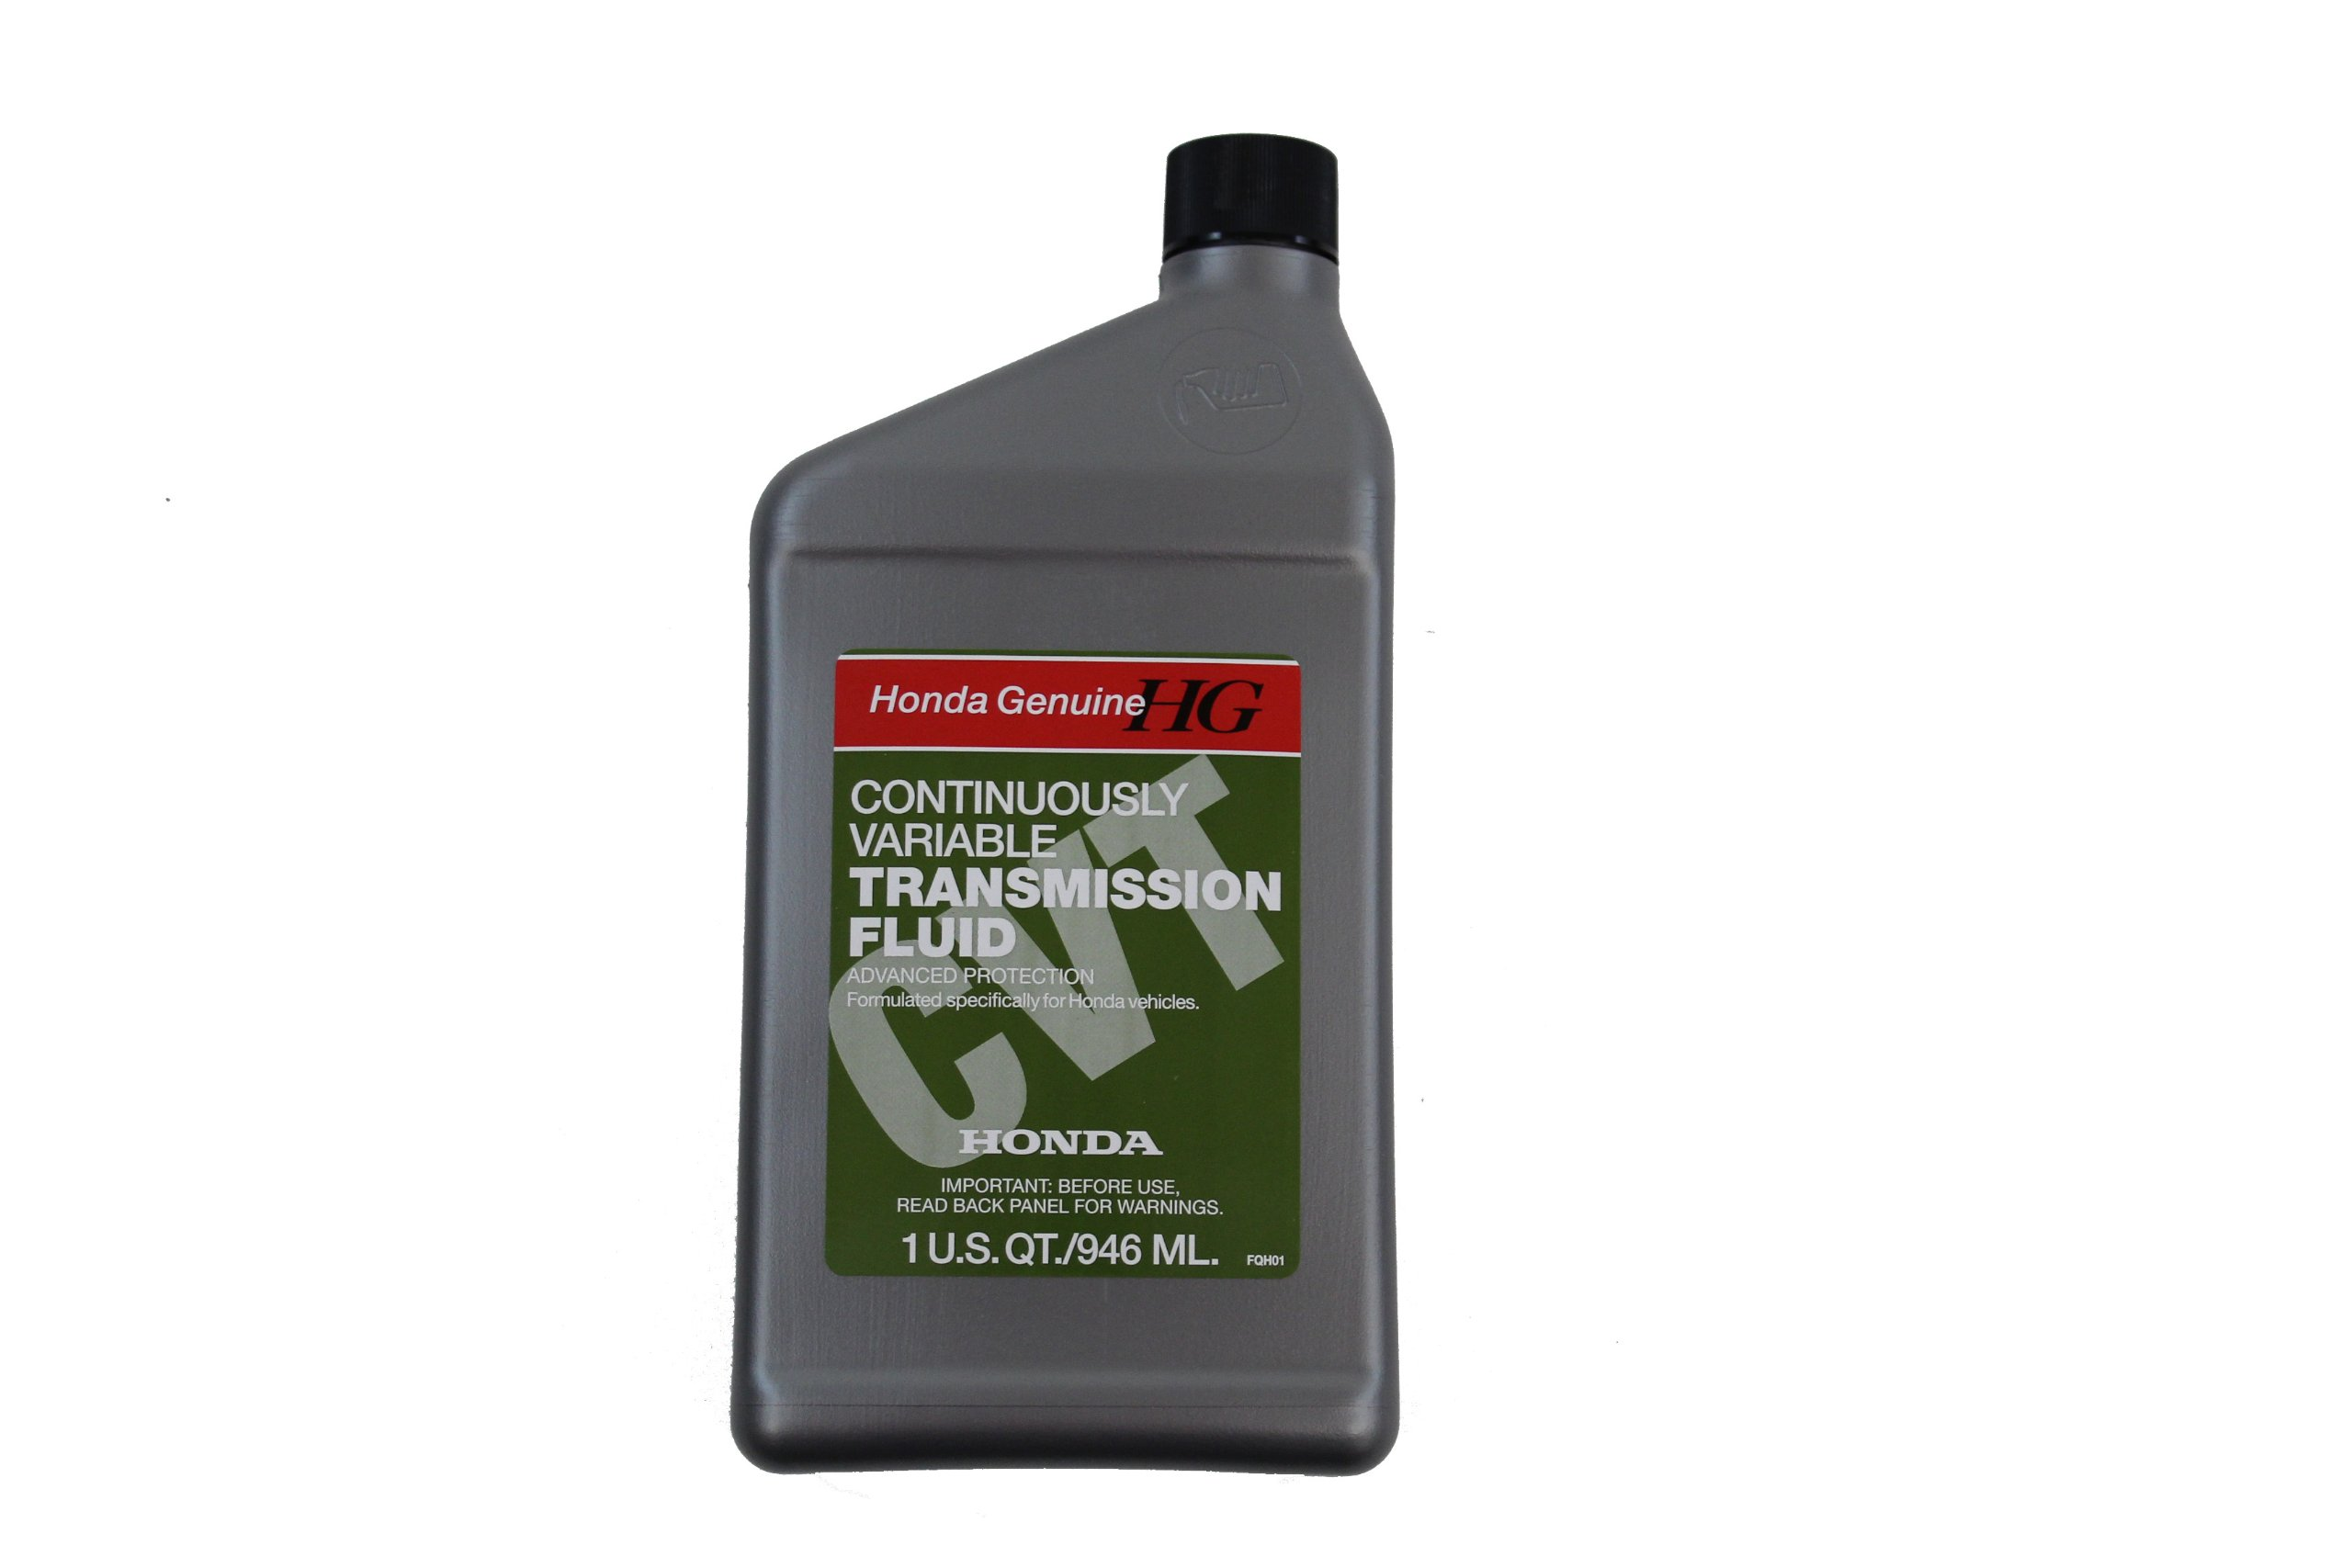 Honda Genuine Fluid 08200-9006 CVT-1 Continuously Variable Transmission Fluid - 1 Quart